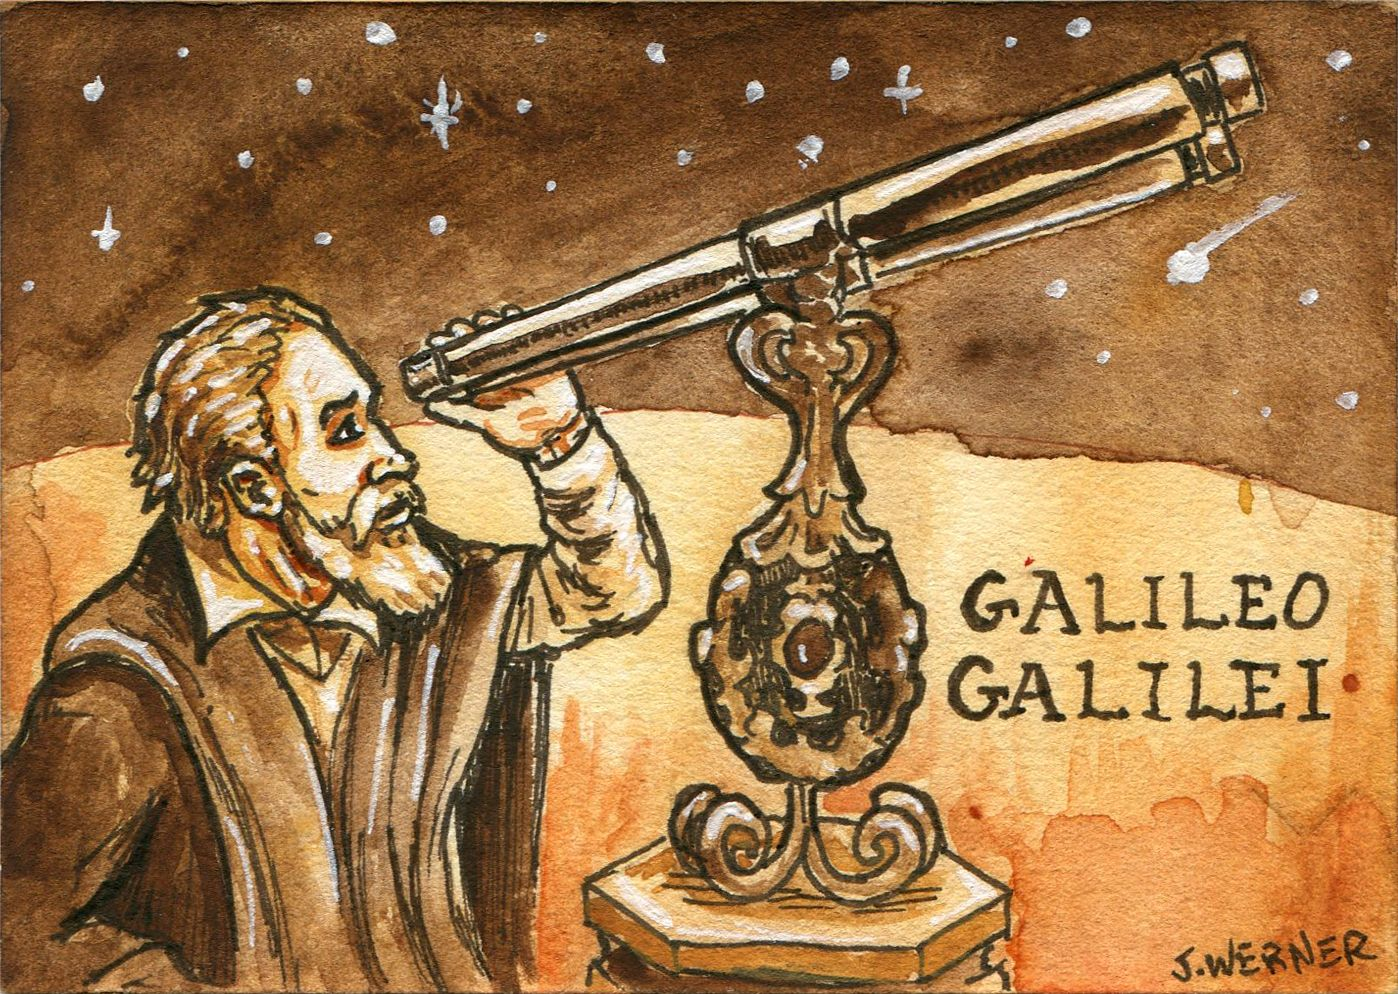 the early life achievements and influence of galileo galilei Galileo galilei was a italian physicist, mathematician, astronomer, and his achievements include improvements to the telescope and consequent astronomical observations, and early life and career galileo was born in pisa, tuscany, on february 15, 1564, the oldest son of vincenzo galilei.